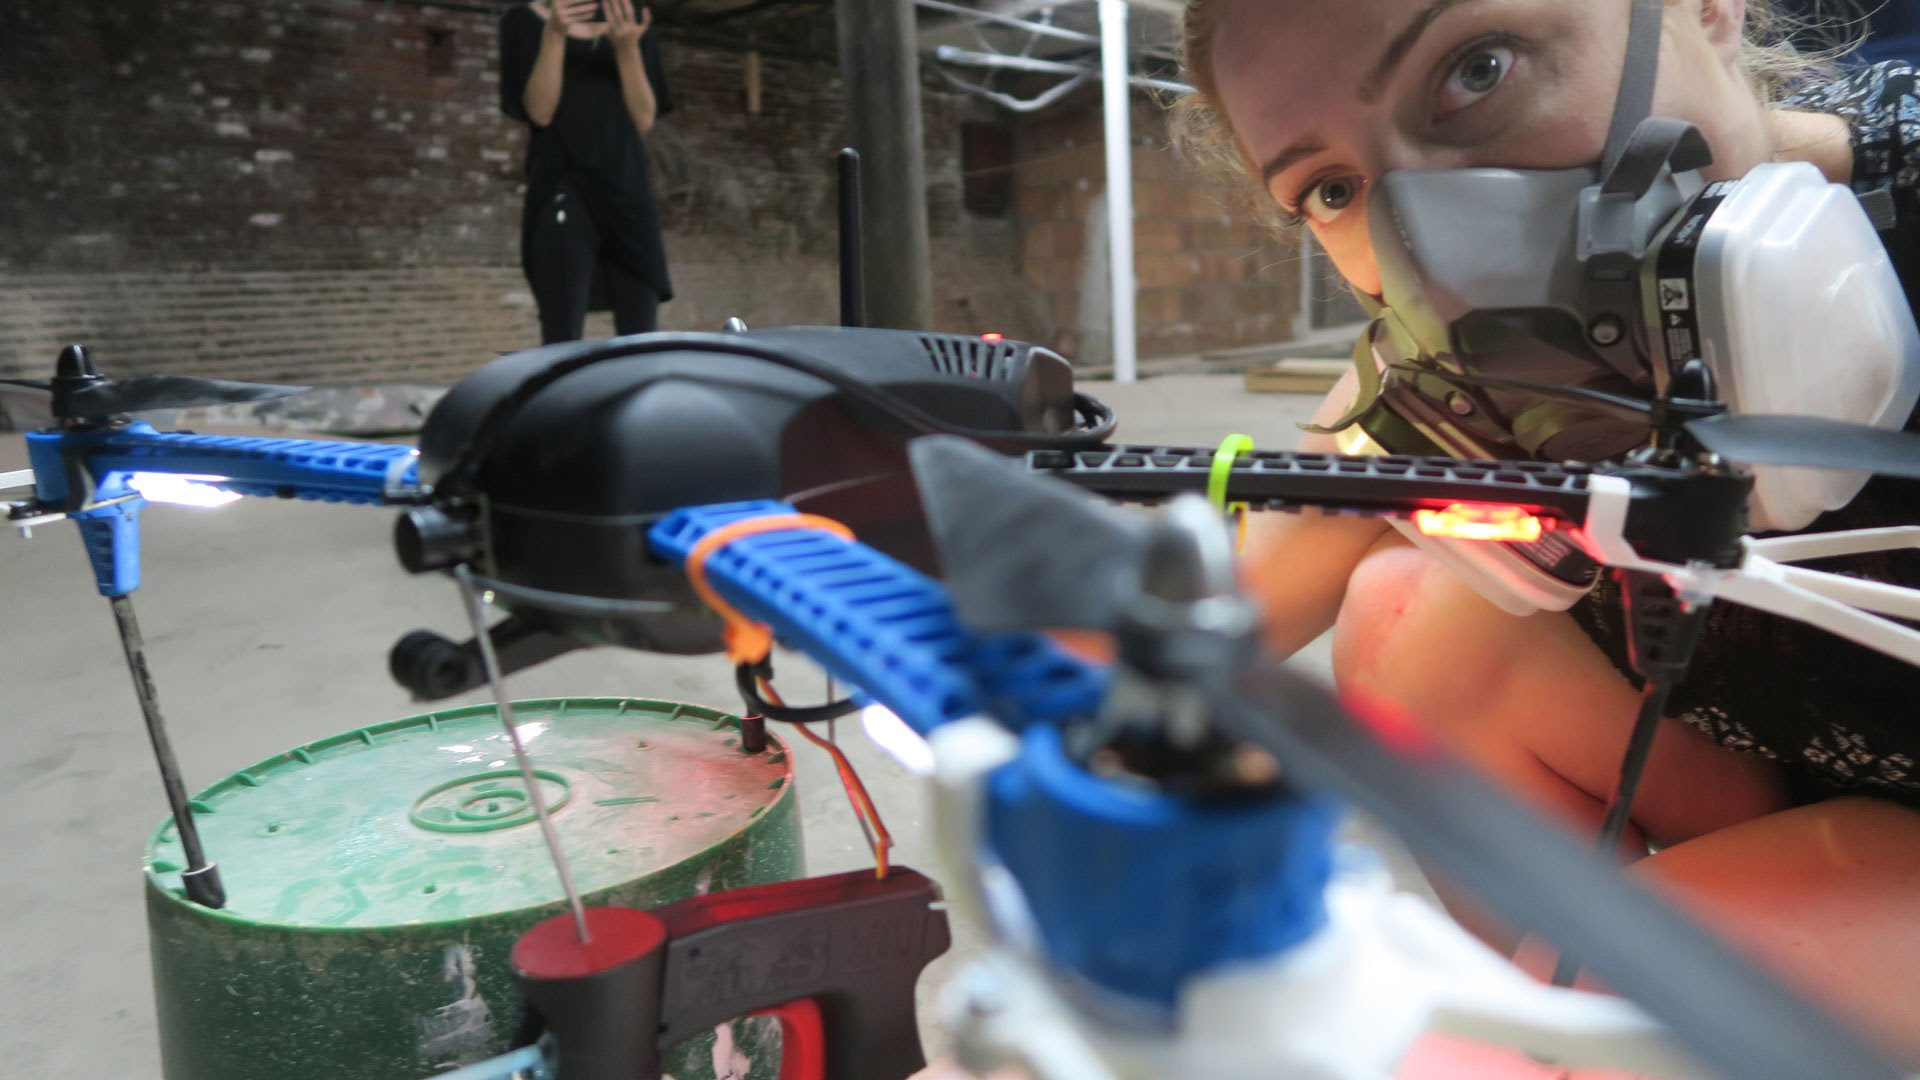 Prototyping a Spray Painting Quadcopter at NEWINC